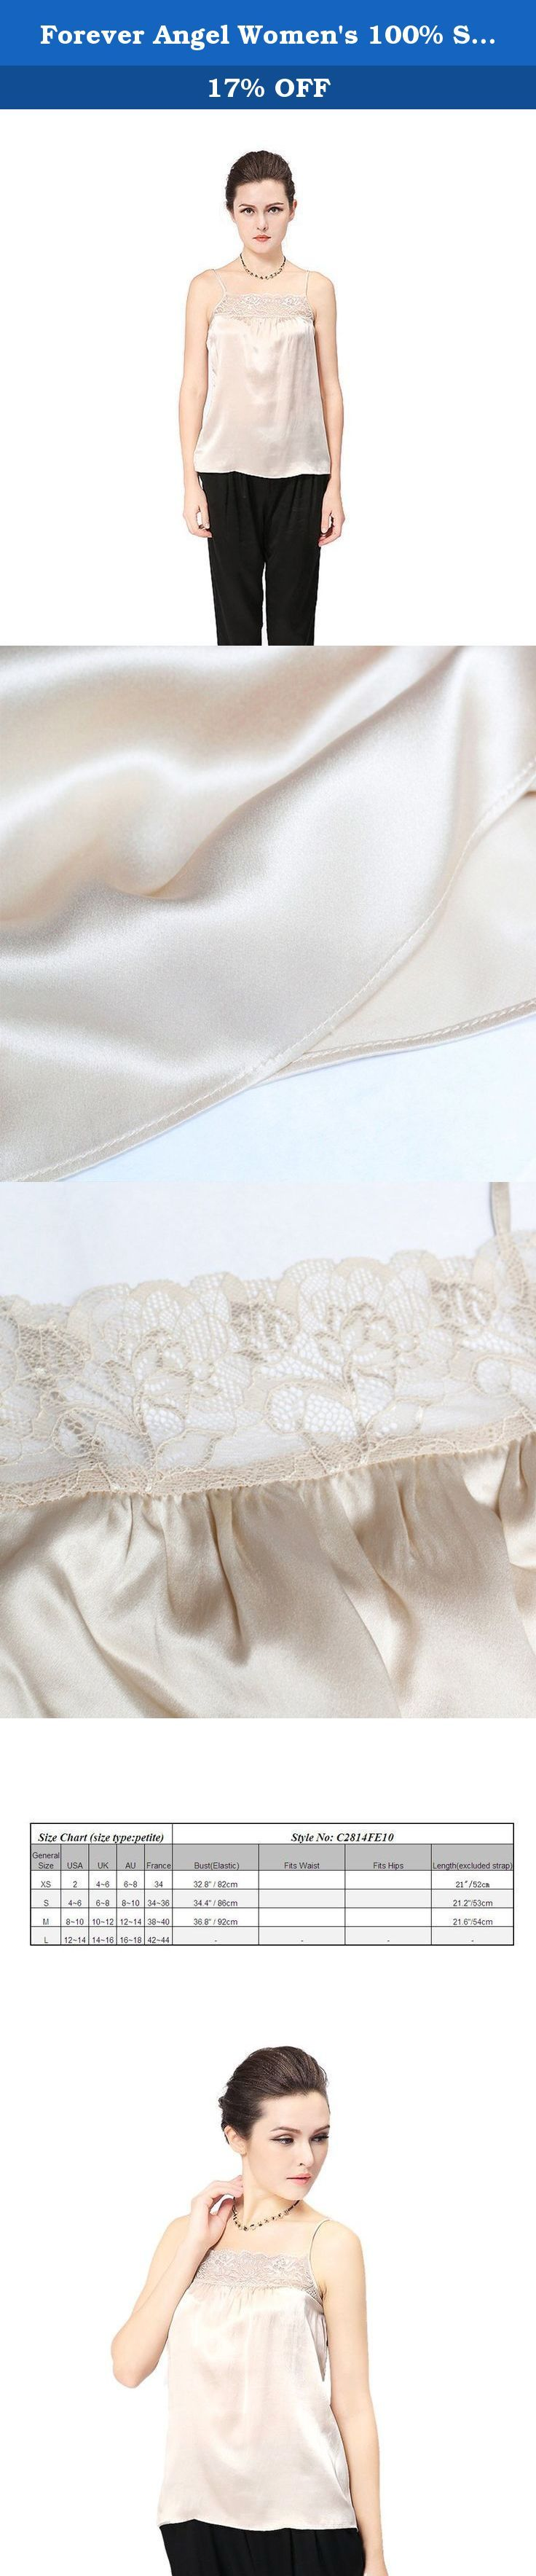 """Forever Angel Women's 100% Silk Charmeuse Lace Camisole Top Ivory Size S. ♦This top is made of 16 momme high quality silk Charmeuse,modern and elegant ; The """"hand"""" of silk is exceptionally smooth and flowing. ♦It is so light and soft that when you run it across your skin, it feels like a gentle breeze or fresh stream of water. Not only beautiful,it is also healthy! It is particularly good for those who have allergies, arthritis or other ailments because it is naturally hypoallergenic..."""